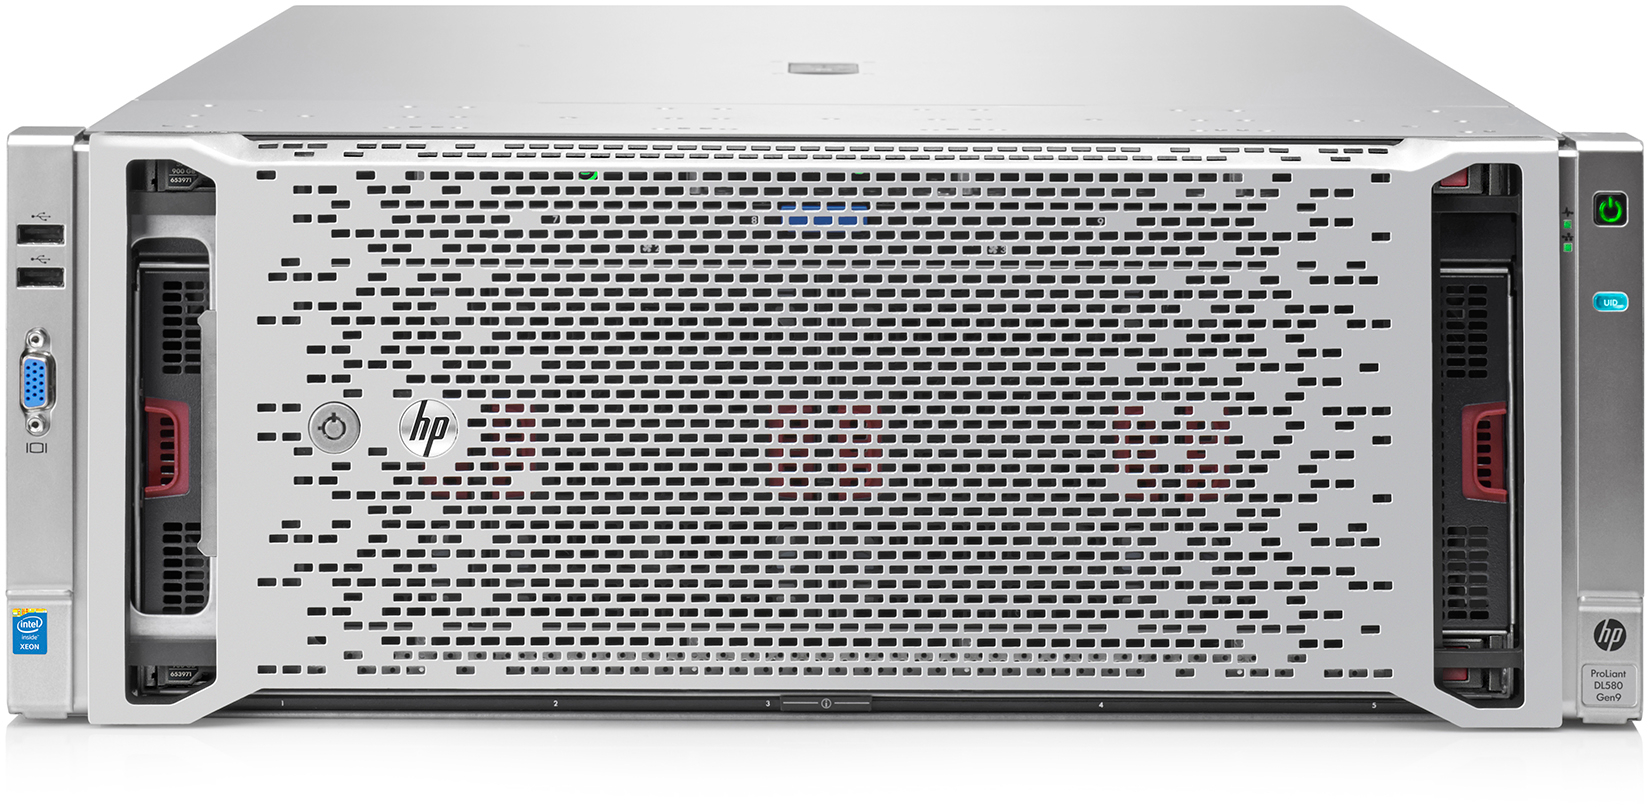 Сервер HP ProLiant DL580 Gen9 - корпус Rackmount 4U, 10 отсеков 2.5